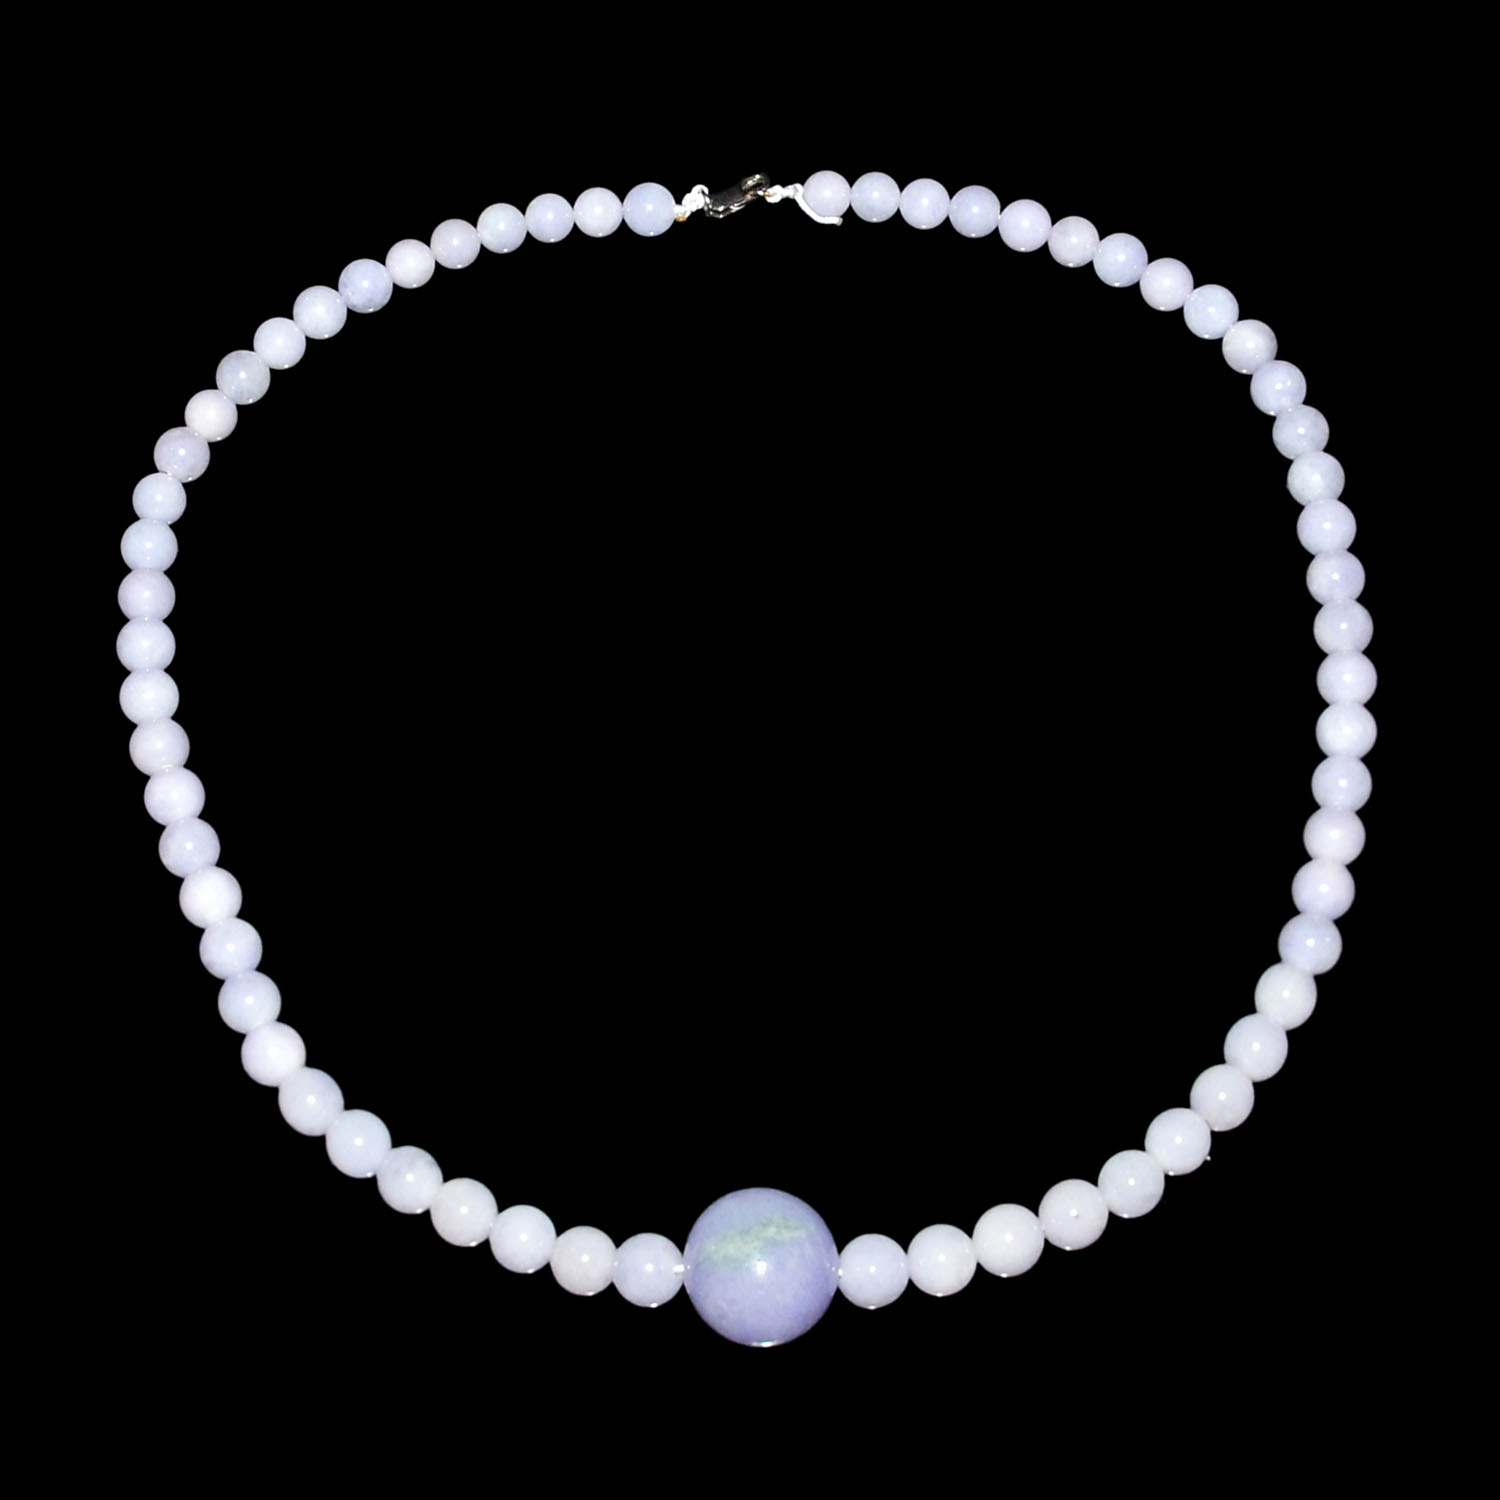 Lot 4 - 紫羅蘭翠玉珠鏈 Jadeite Lavender Bead Necklace with Central Bead  Diameter: 6½ in (16.5 cm)  Weight: 74 g